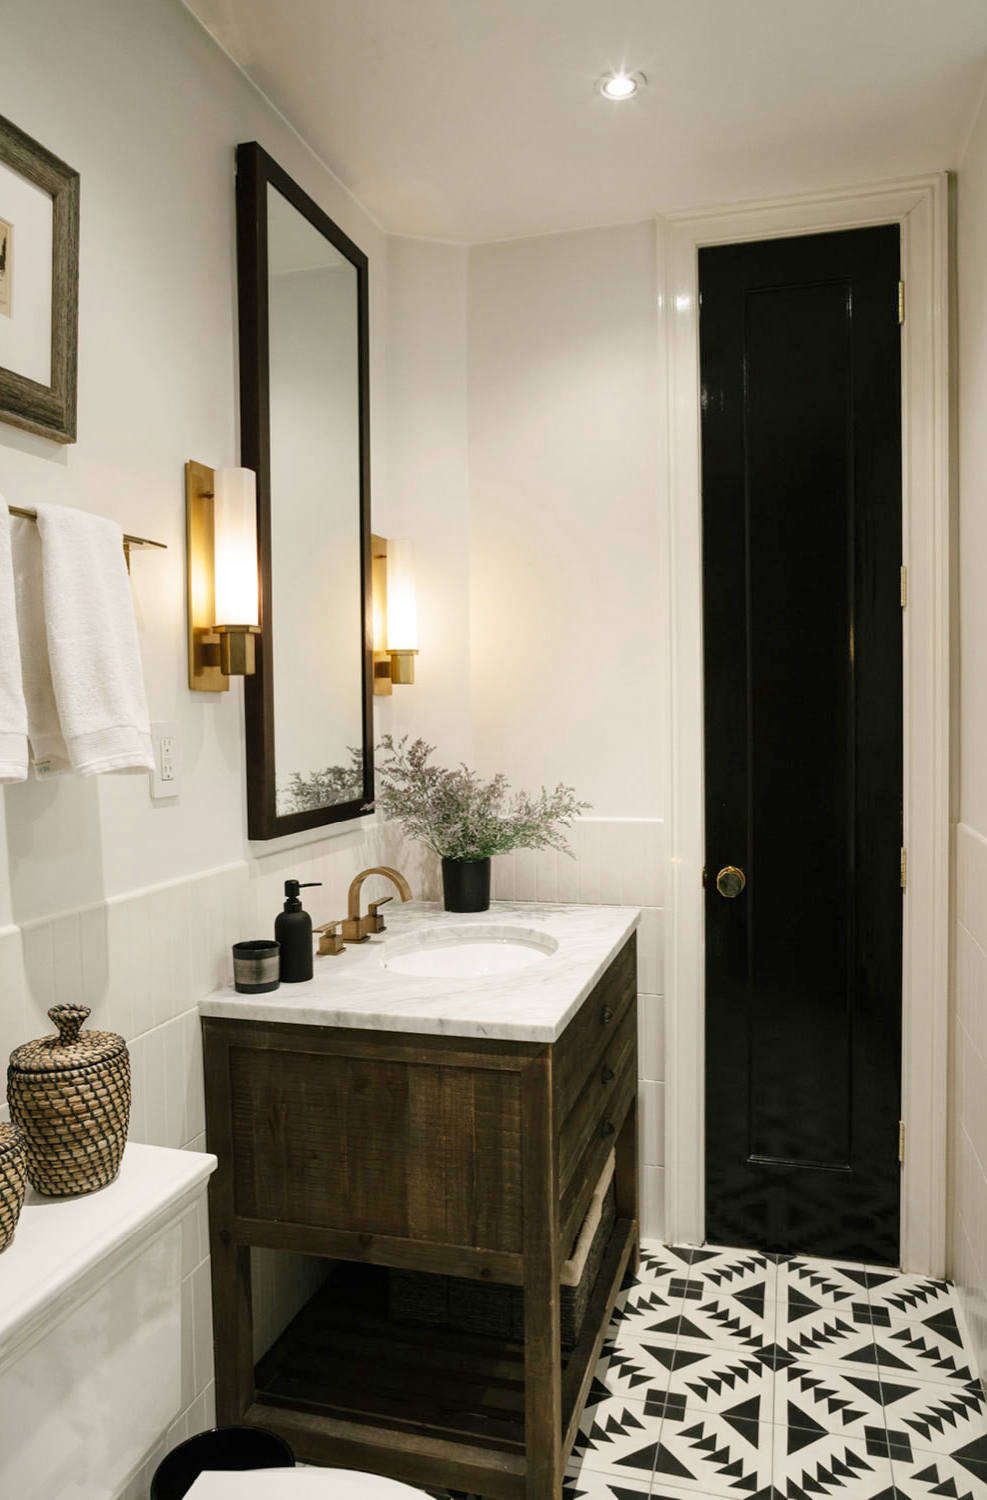 The bathroom features a stone-topped vanity fromRestoration Hardware. Above it are Argon Sconces from Hudson Valley Lighting and a custom mirror. Tiles from Cement Tile Shop form a graphic pattern.